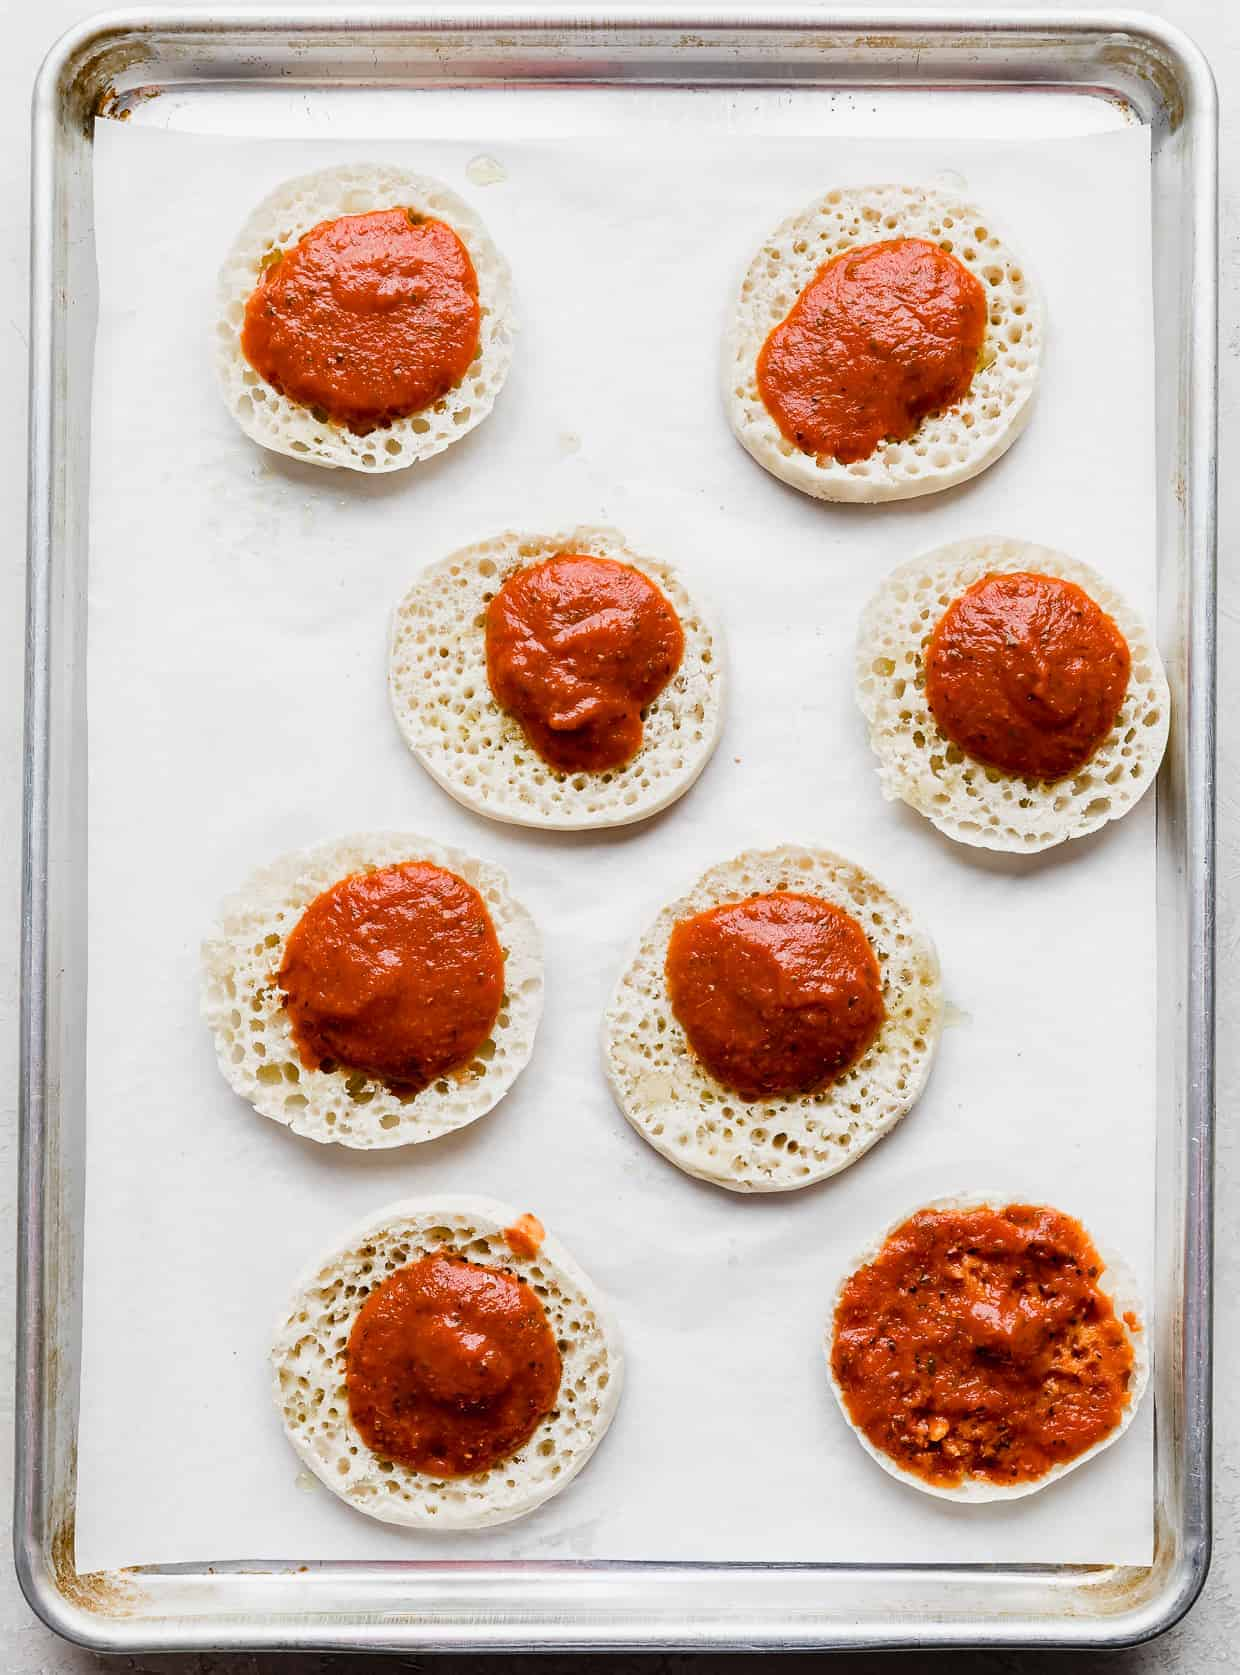 Pizza sauce dolloped on eight English muffin pizza halves.